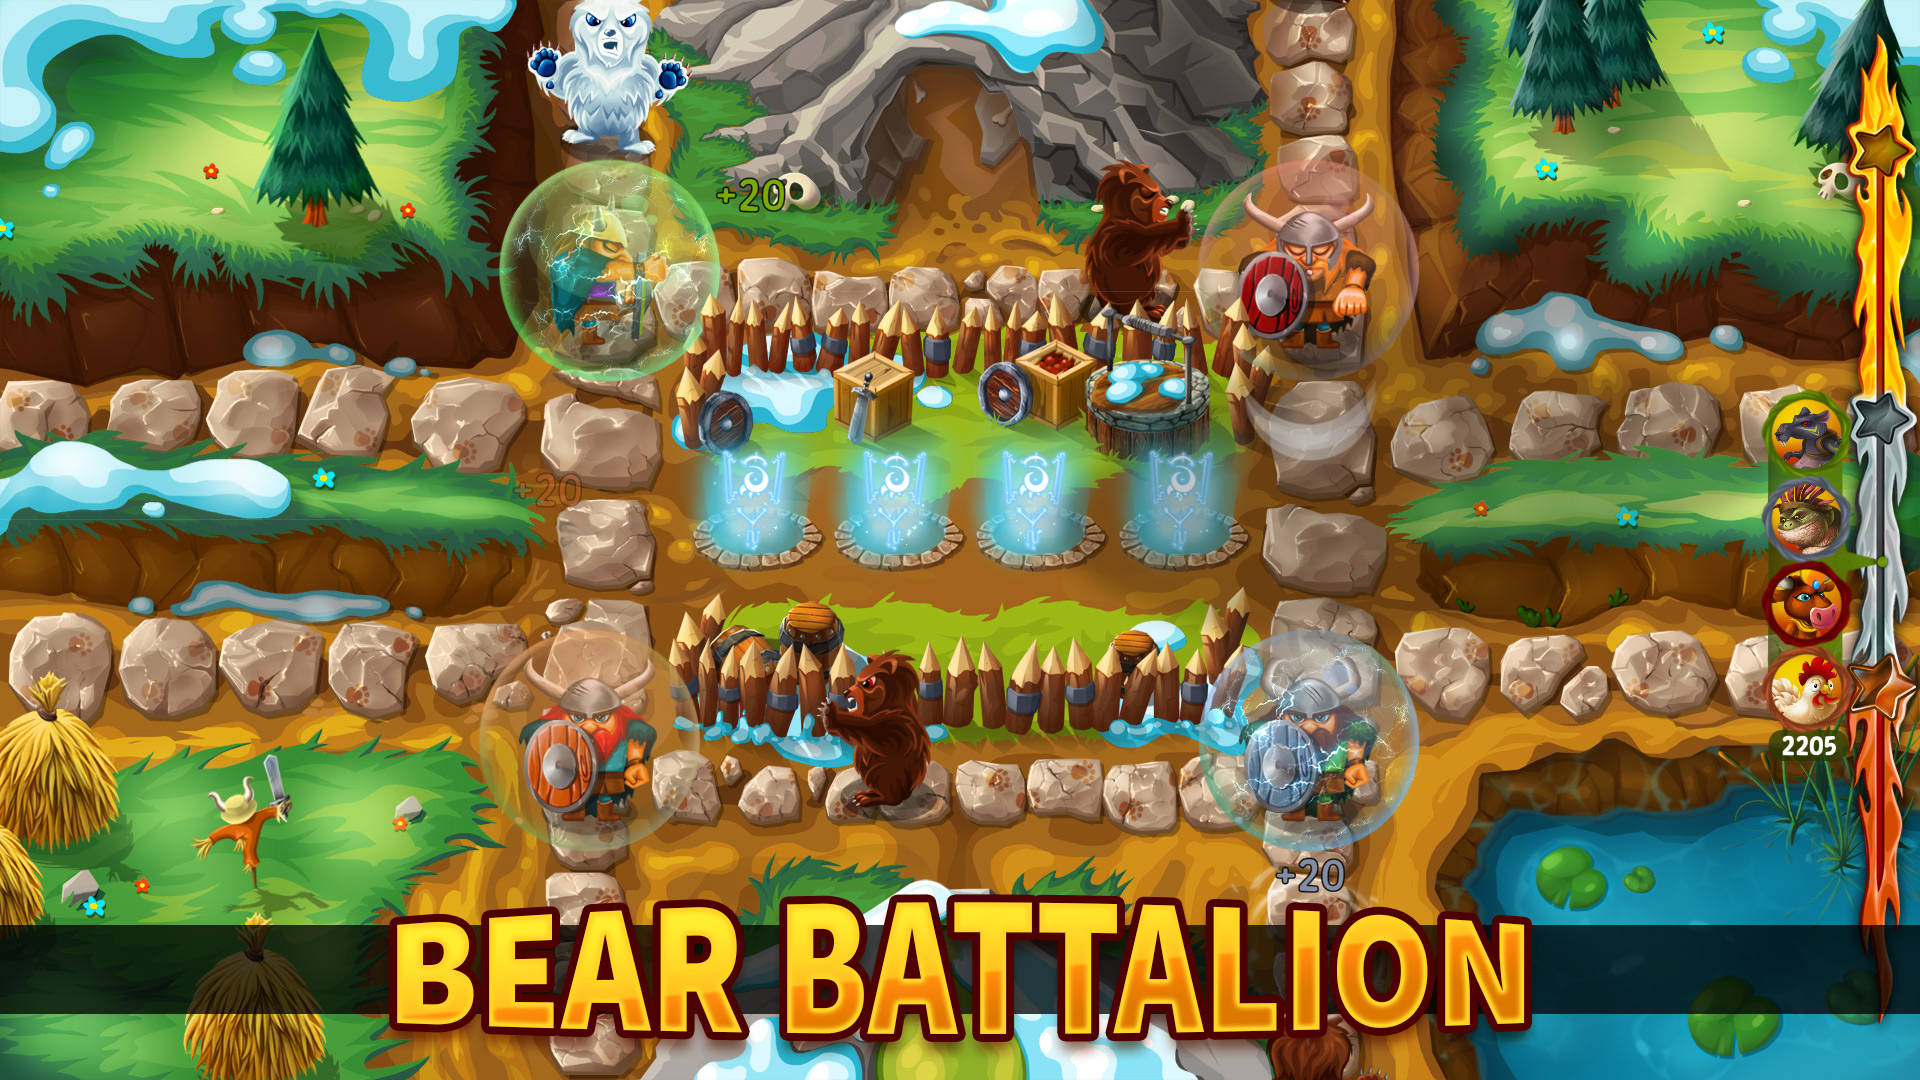 PP_BEAR_BATTALION